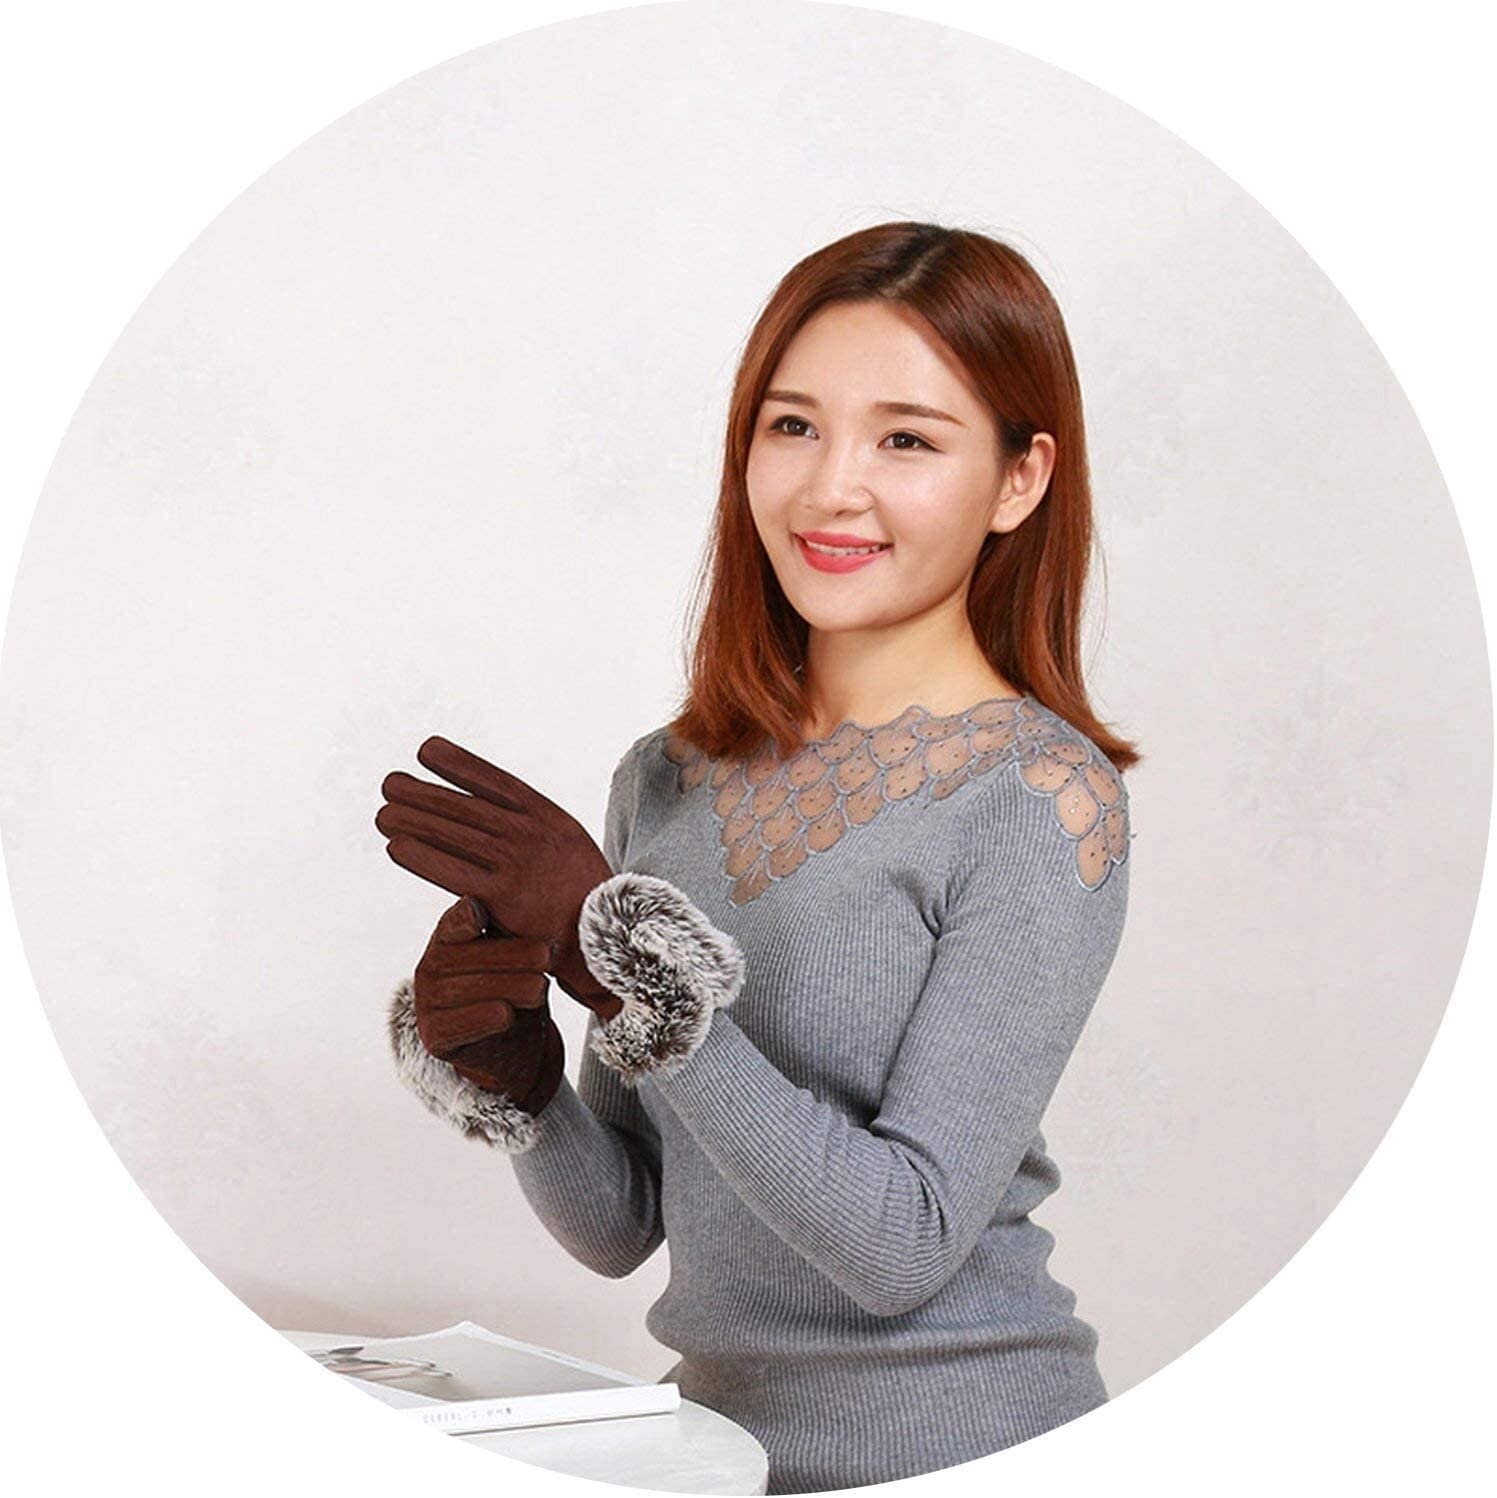 Samantha Warm Gloves Female Winter Suede Leather Cashmere Full Finger Warm Gloves Women Large Plush Cuff Cotton Touch Screen Gloves (Color : Brown, Size : Oneszie)